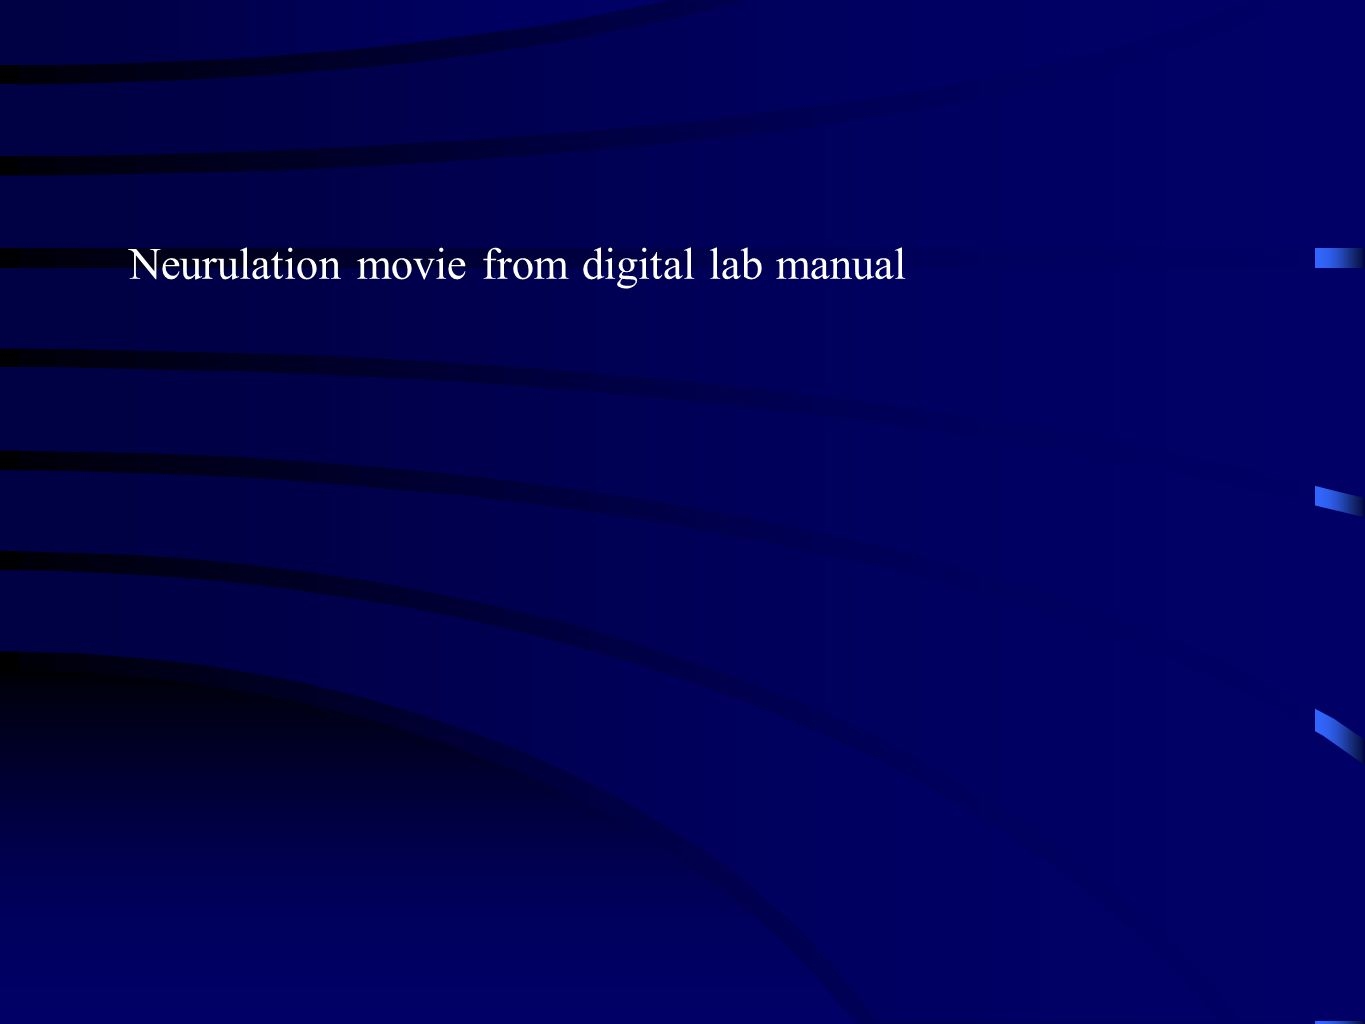 Neurulation movie from digital lab manual